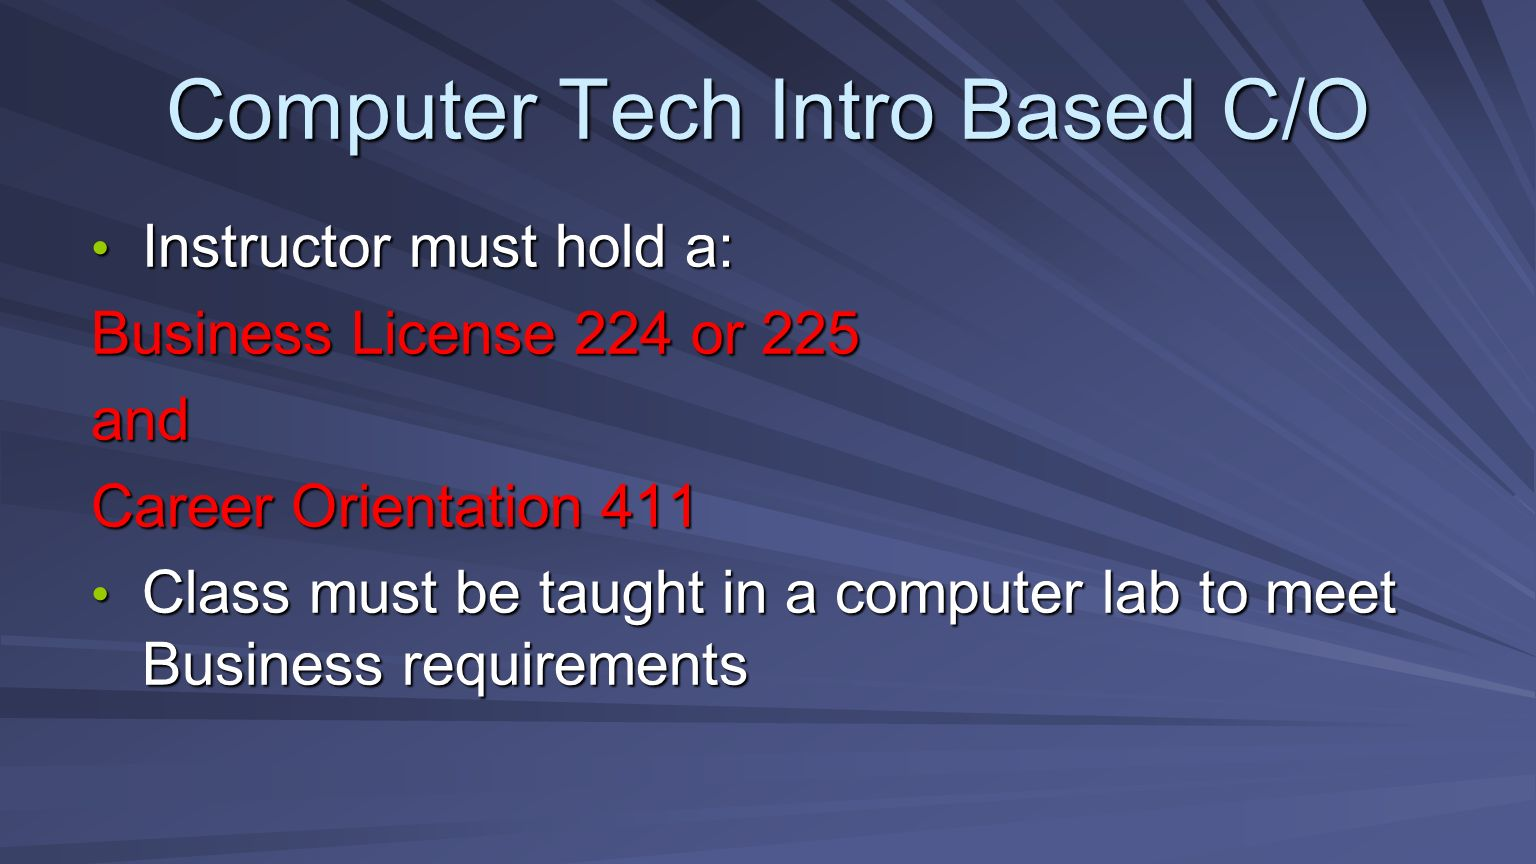 Computer Tech Intro Based C/O Instructor must hold a: Instructor must hold a: Business License 224 or 225 and Career Orientation 411 Class must be taught in a computer lab to meet Business requirements Class must be taught in a computer lab to meet Business requirements